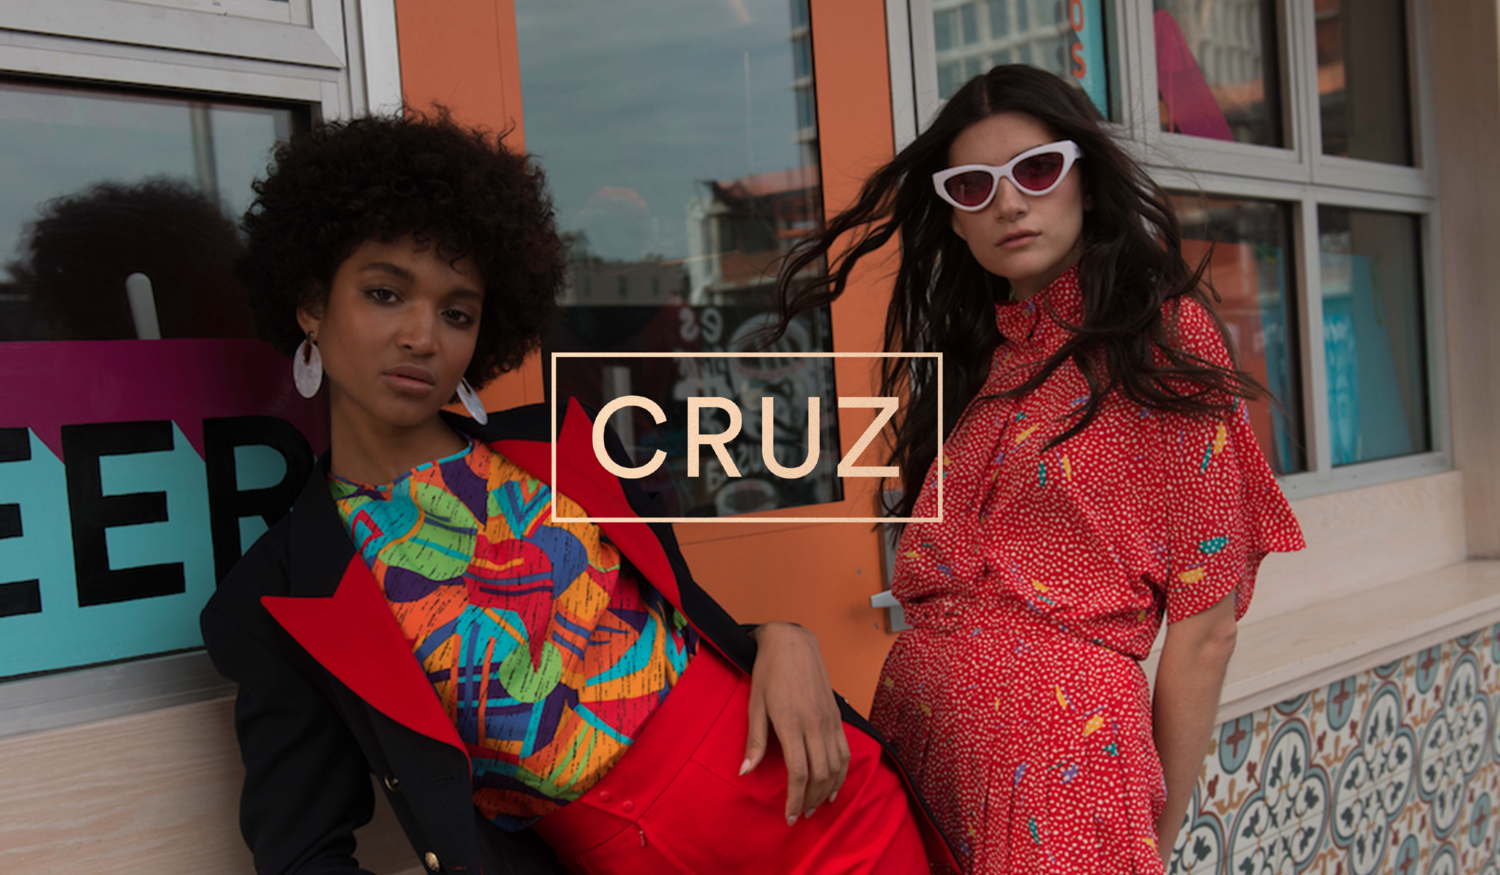 Creative Direction, Fashion Direction & Stylist - CRUZ Vintage (cruzstyle.co) digital editorial Look book, brand campaign.